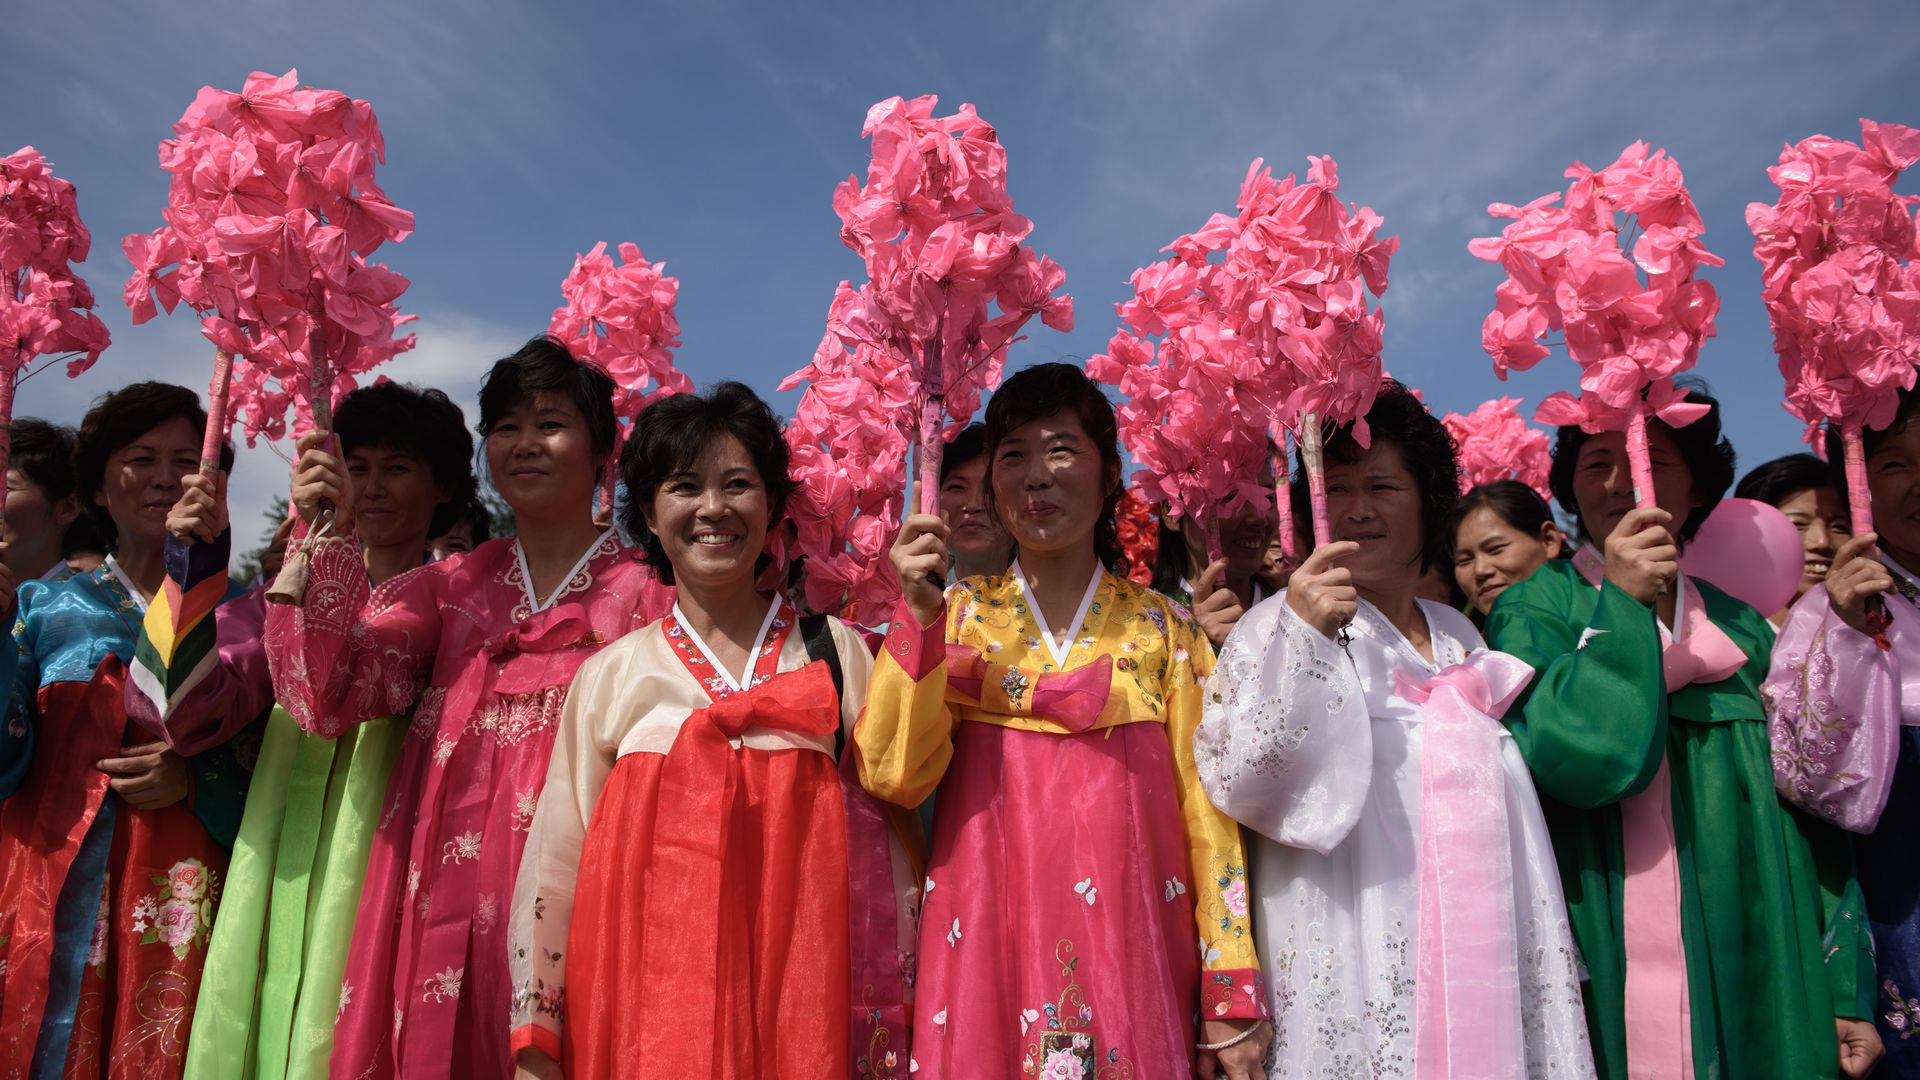 Korean women wearing colorful dresses.